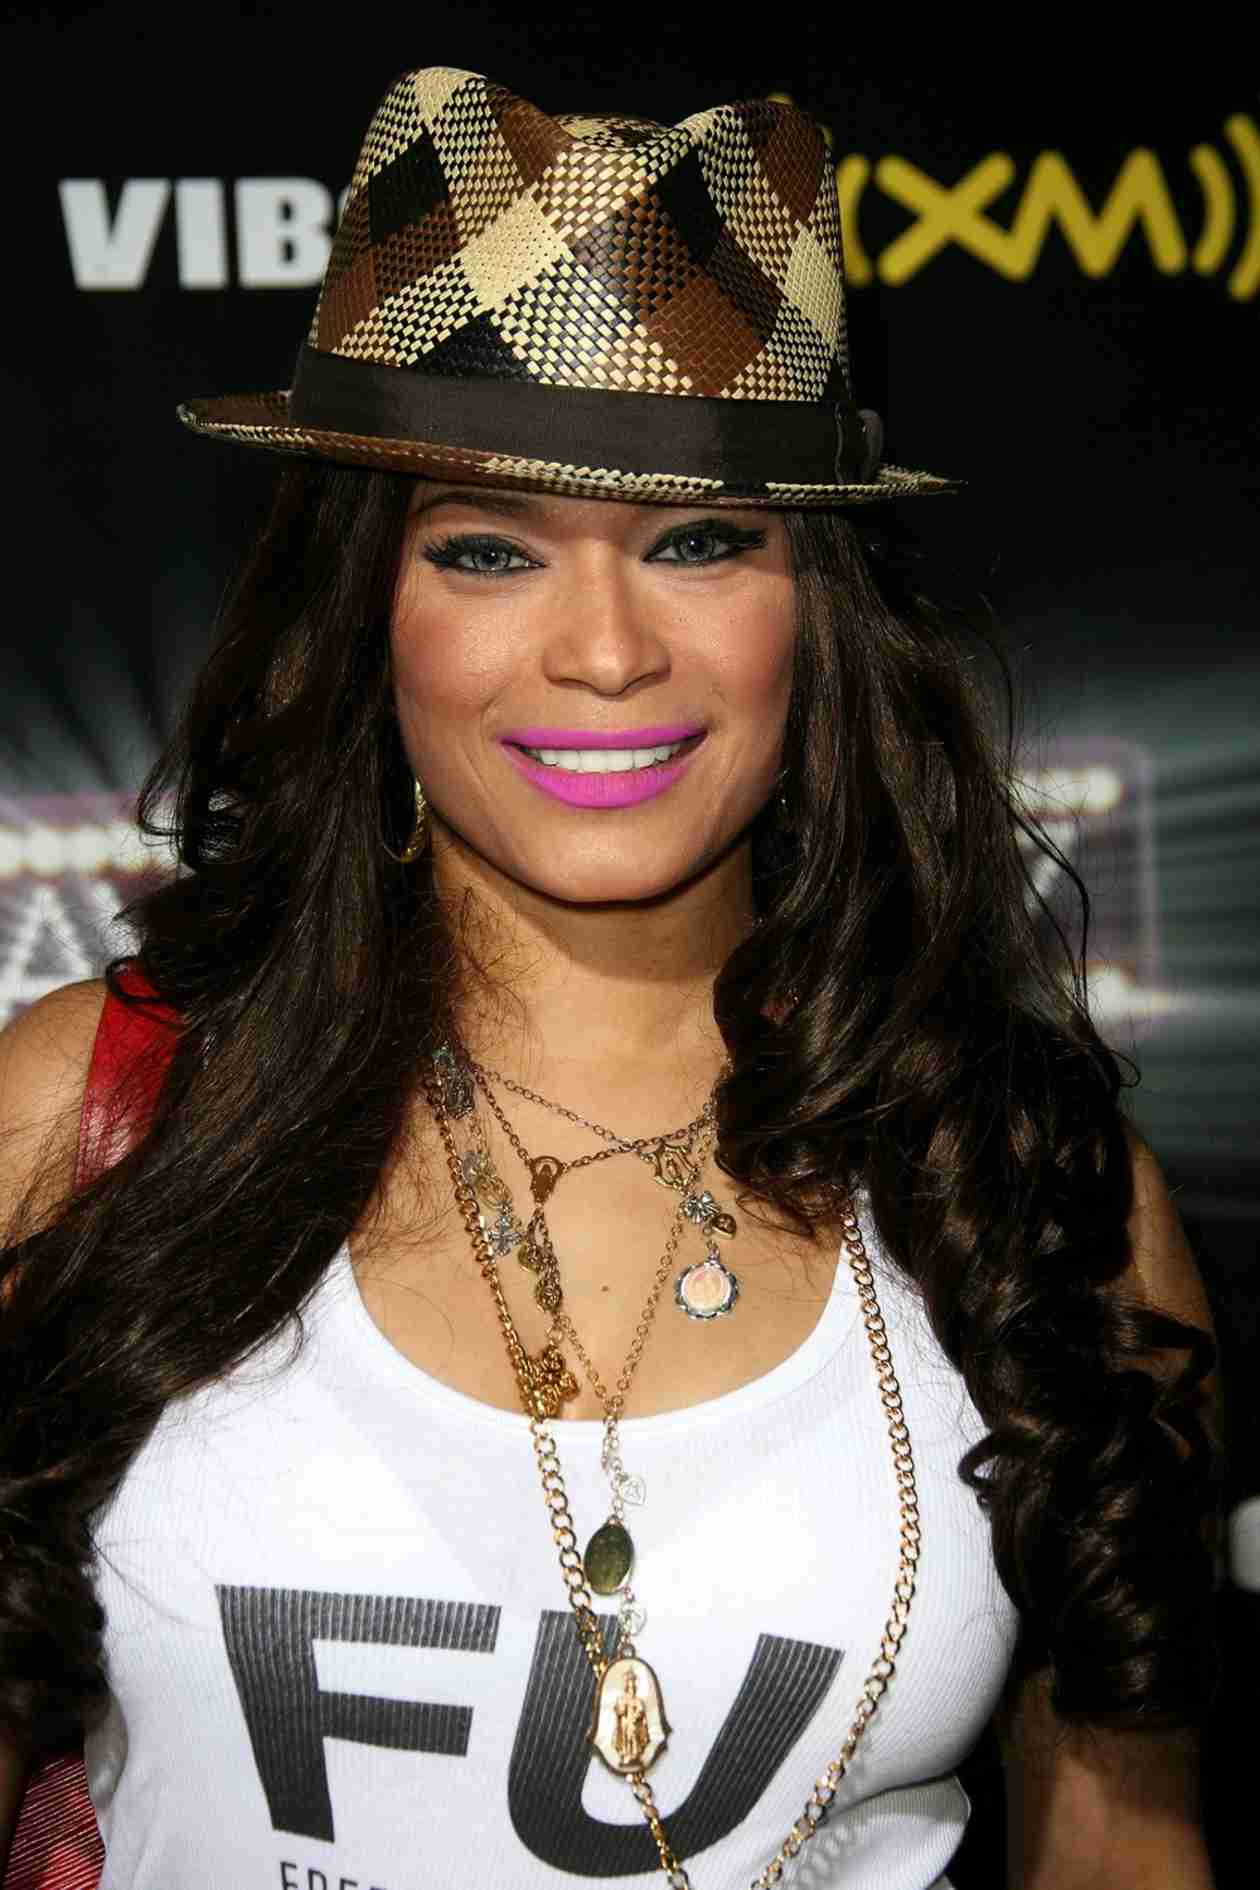 Singer Blu Cantrell Hospitalized After Mental Breakdown